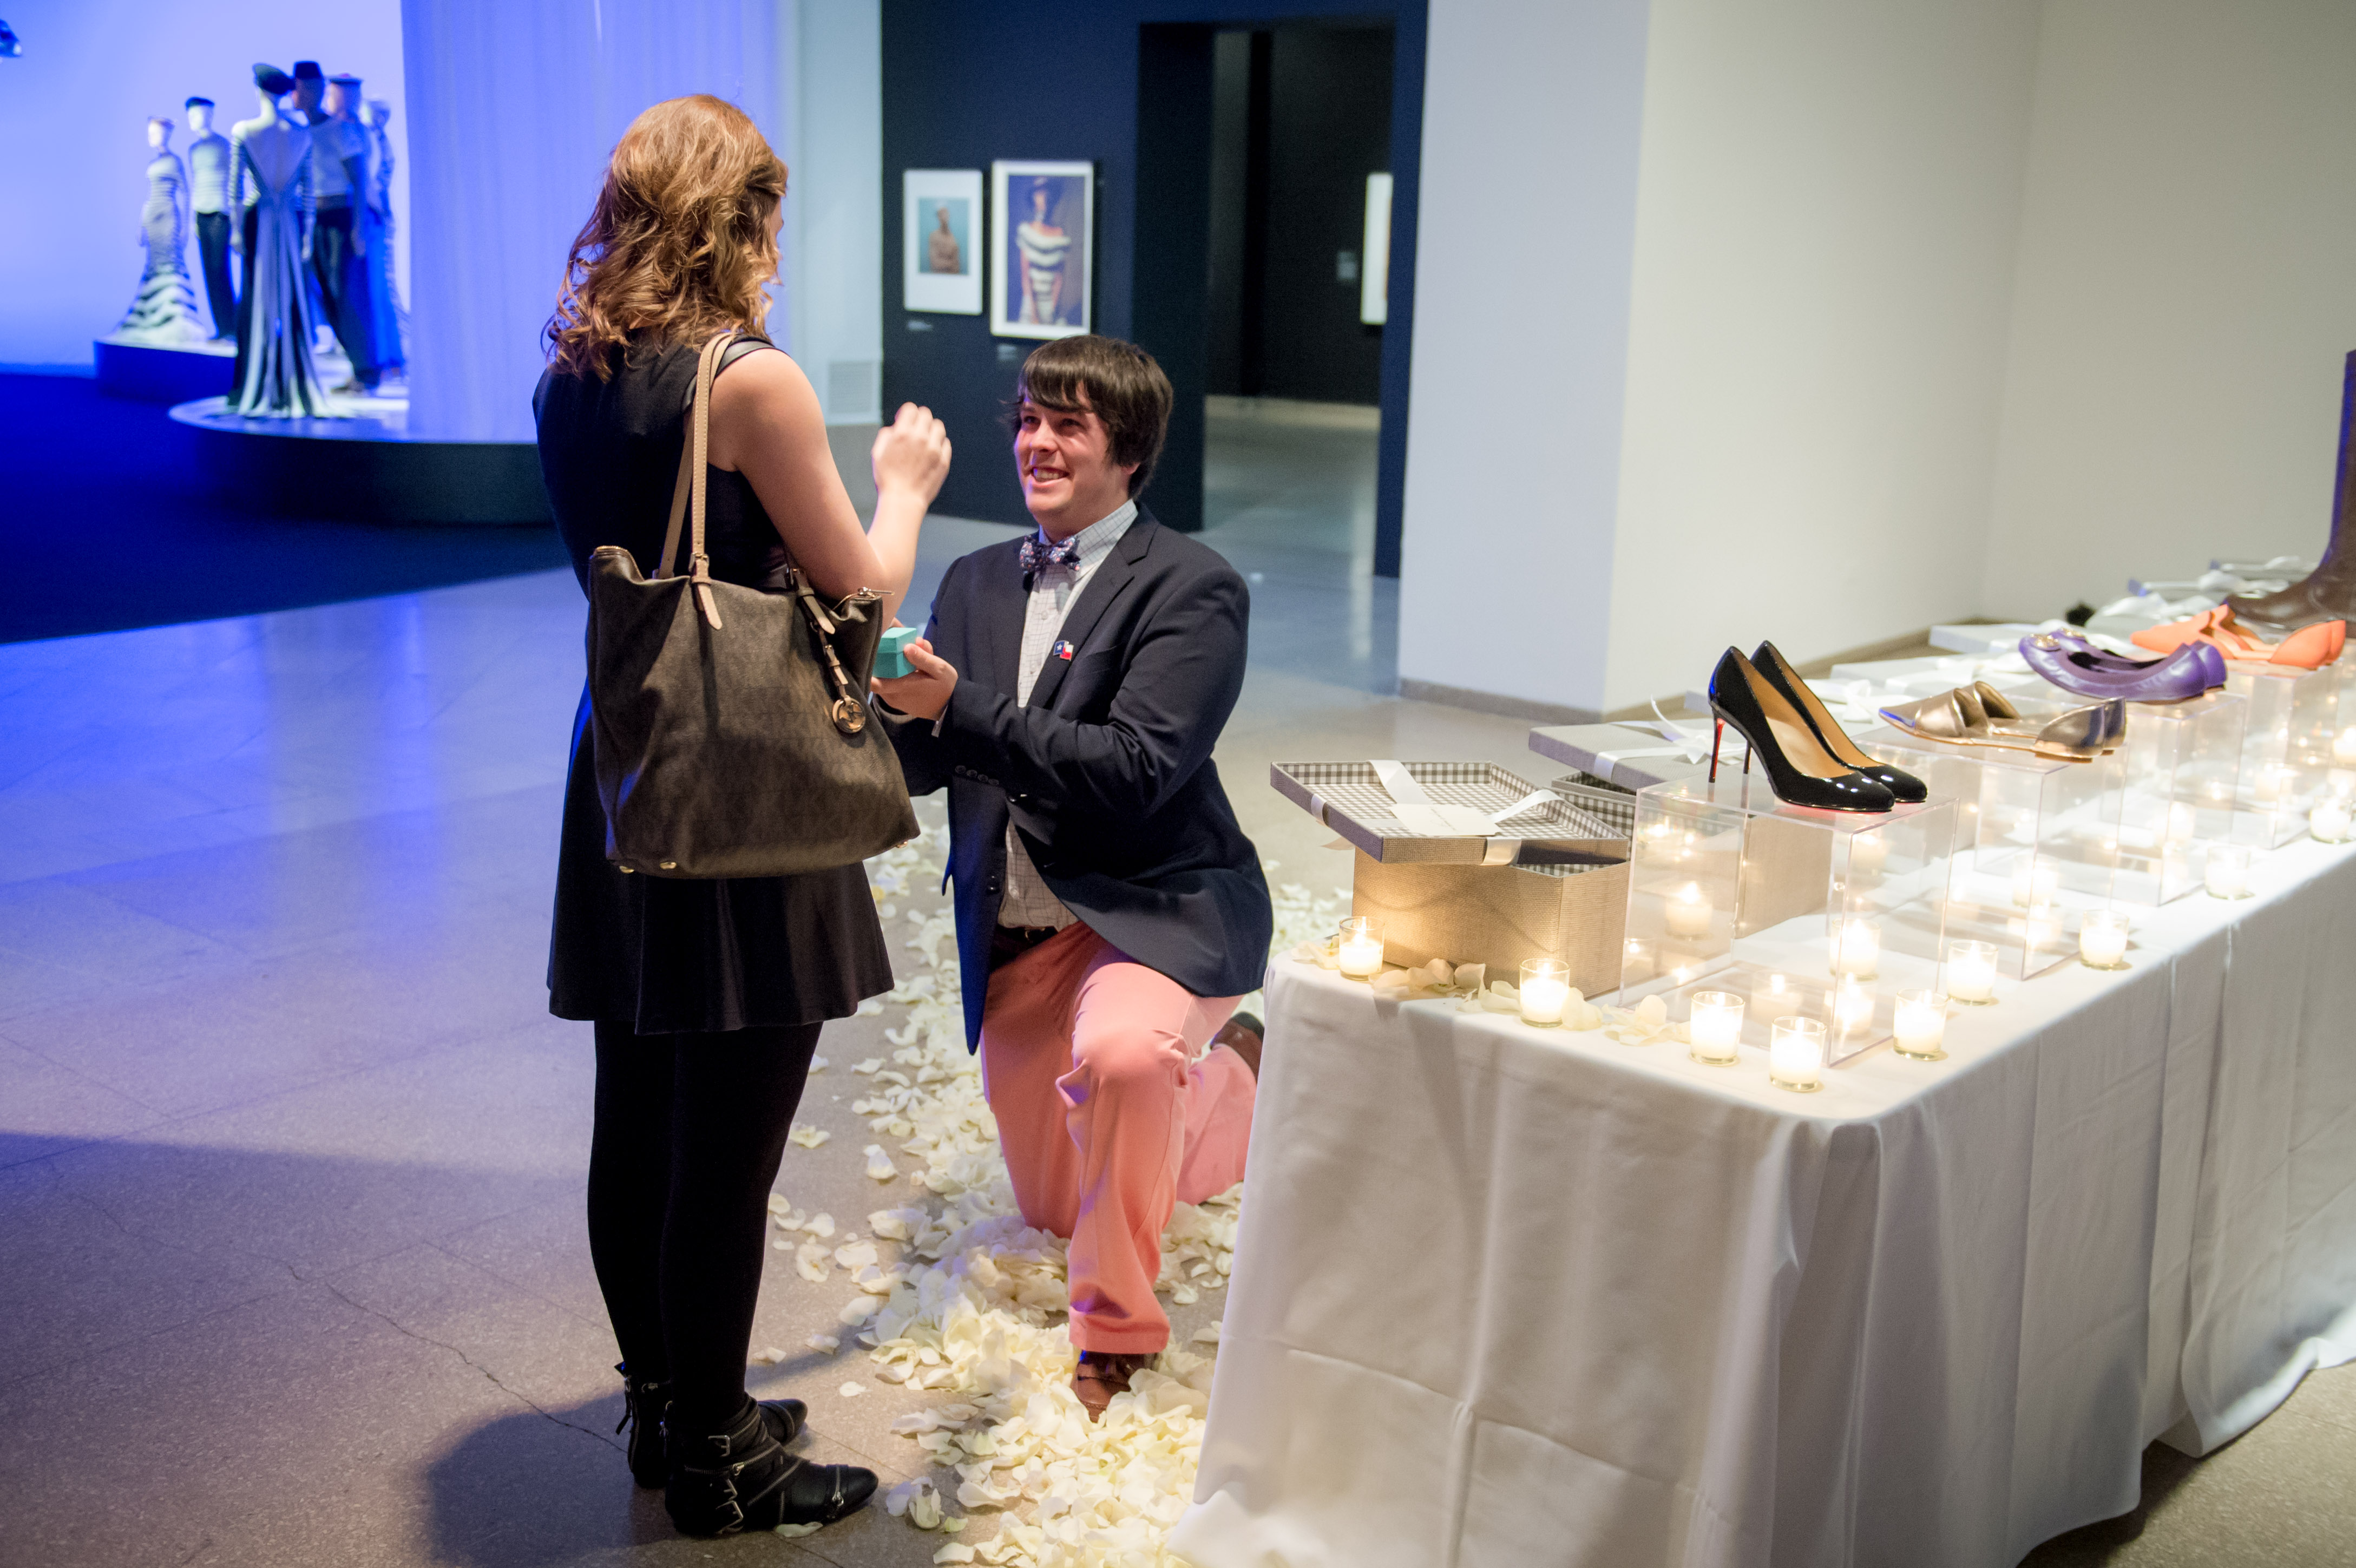 Image 7 of Kelcie and Bo | A Shoe Lover's Dream Proposal